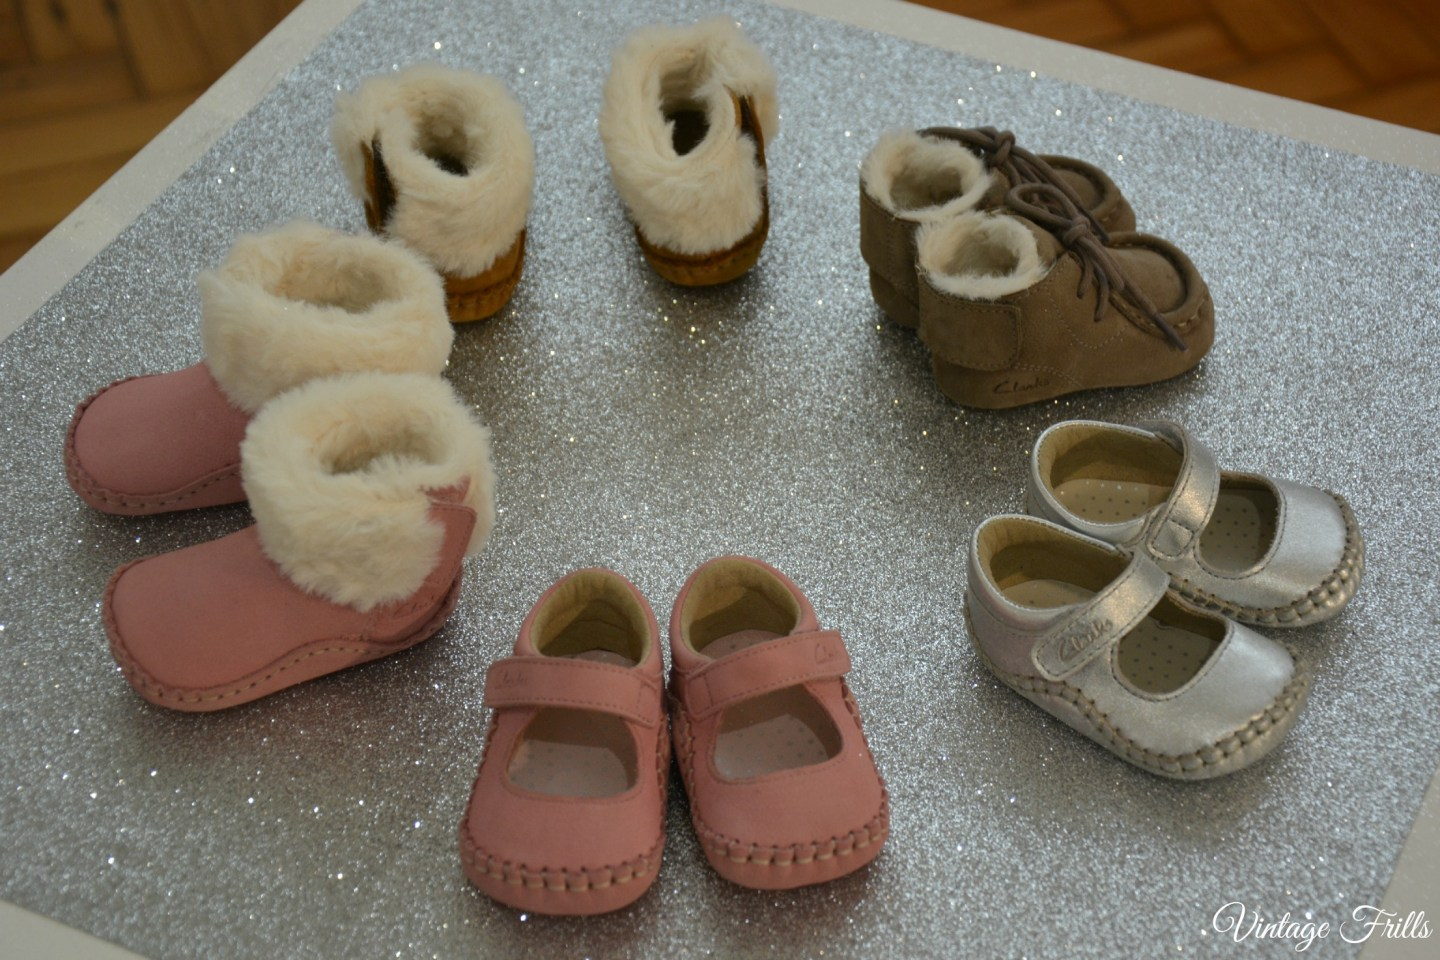 Clarks AW15 Press Day Baby Shoes